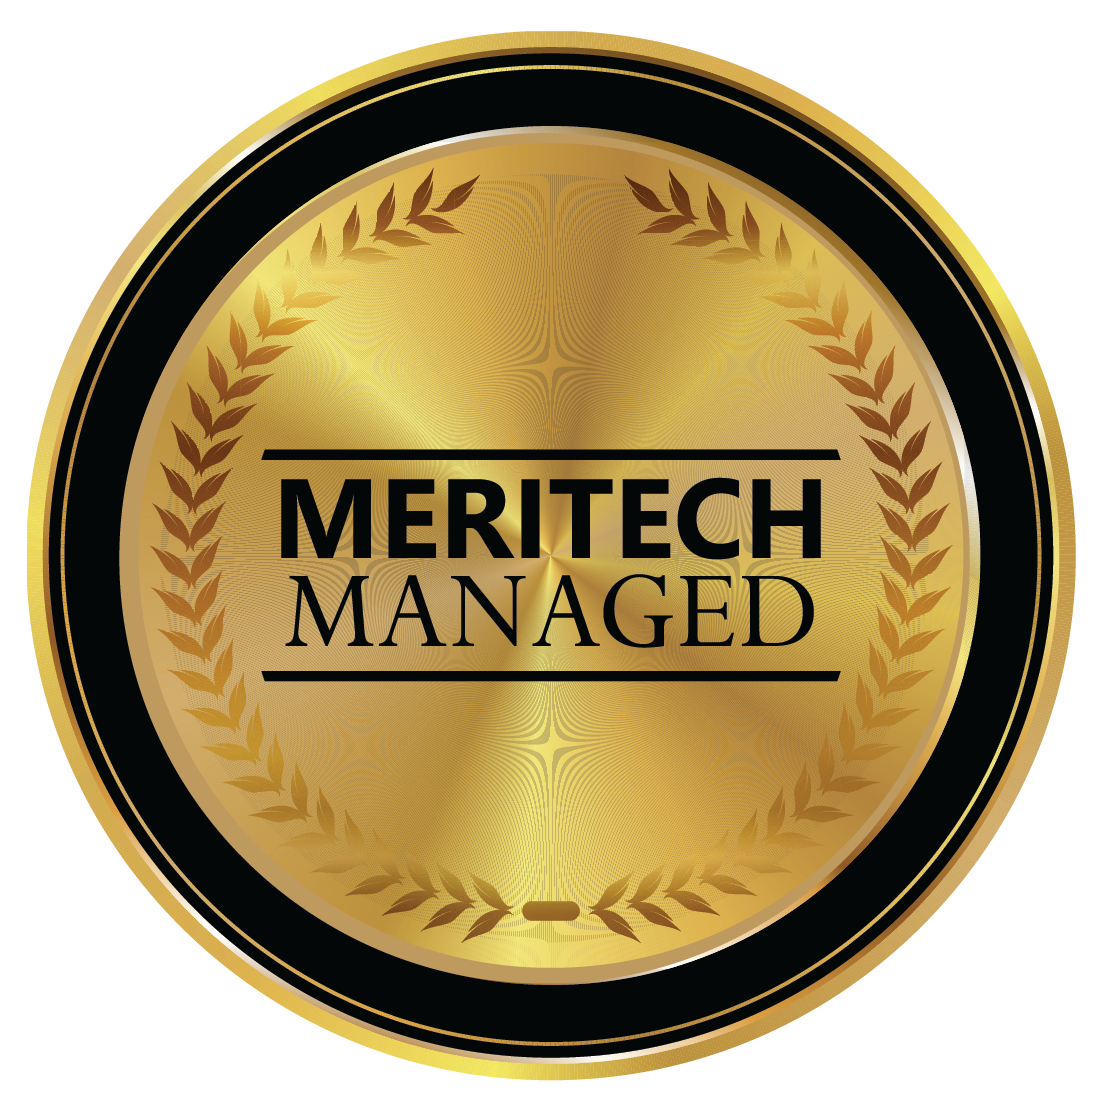 Meritech-Managed-Logo.png